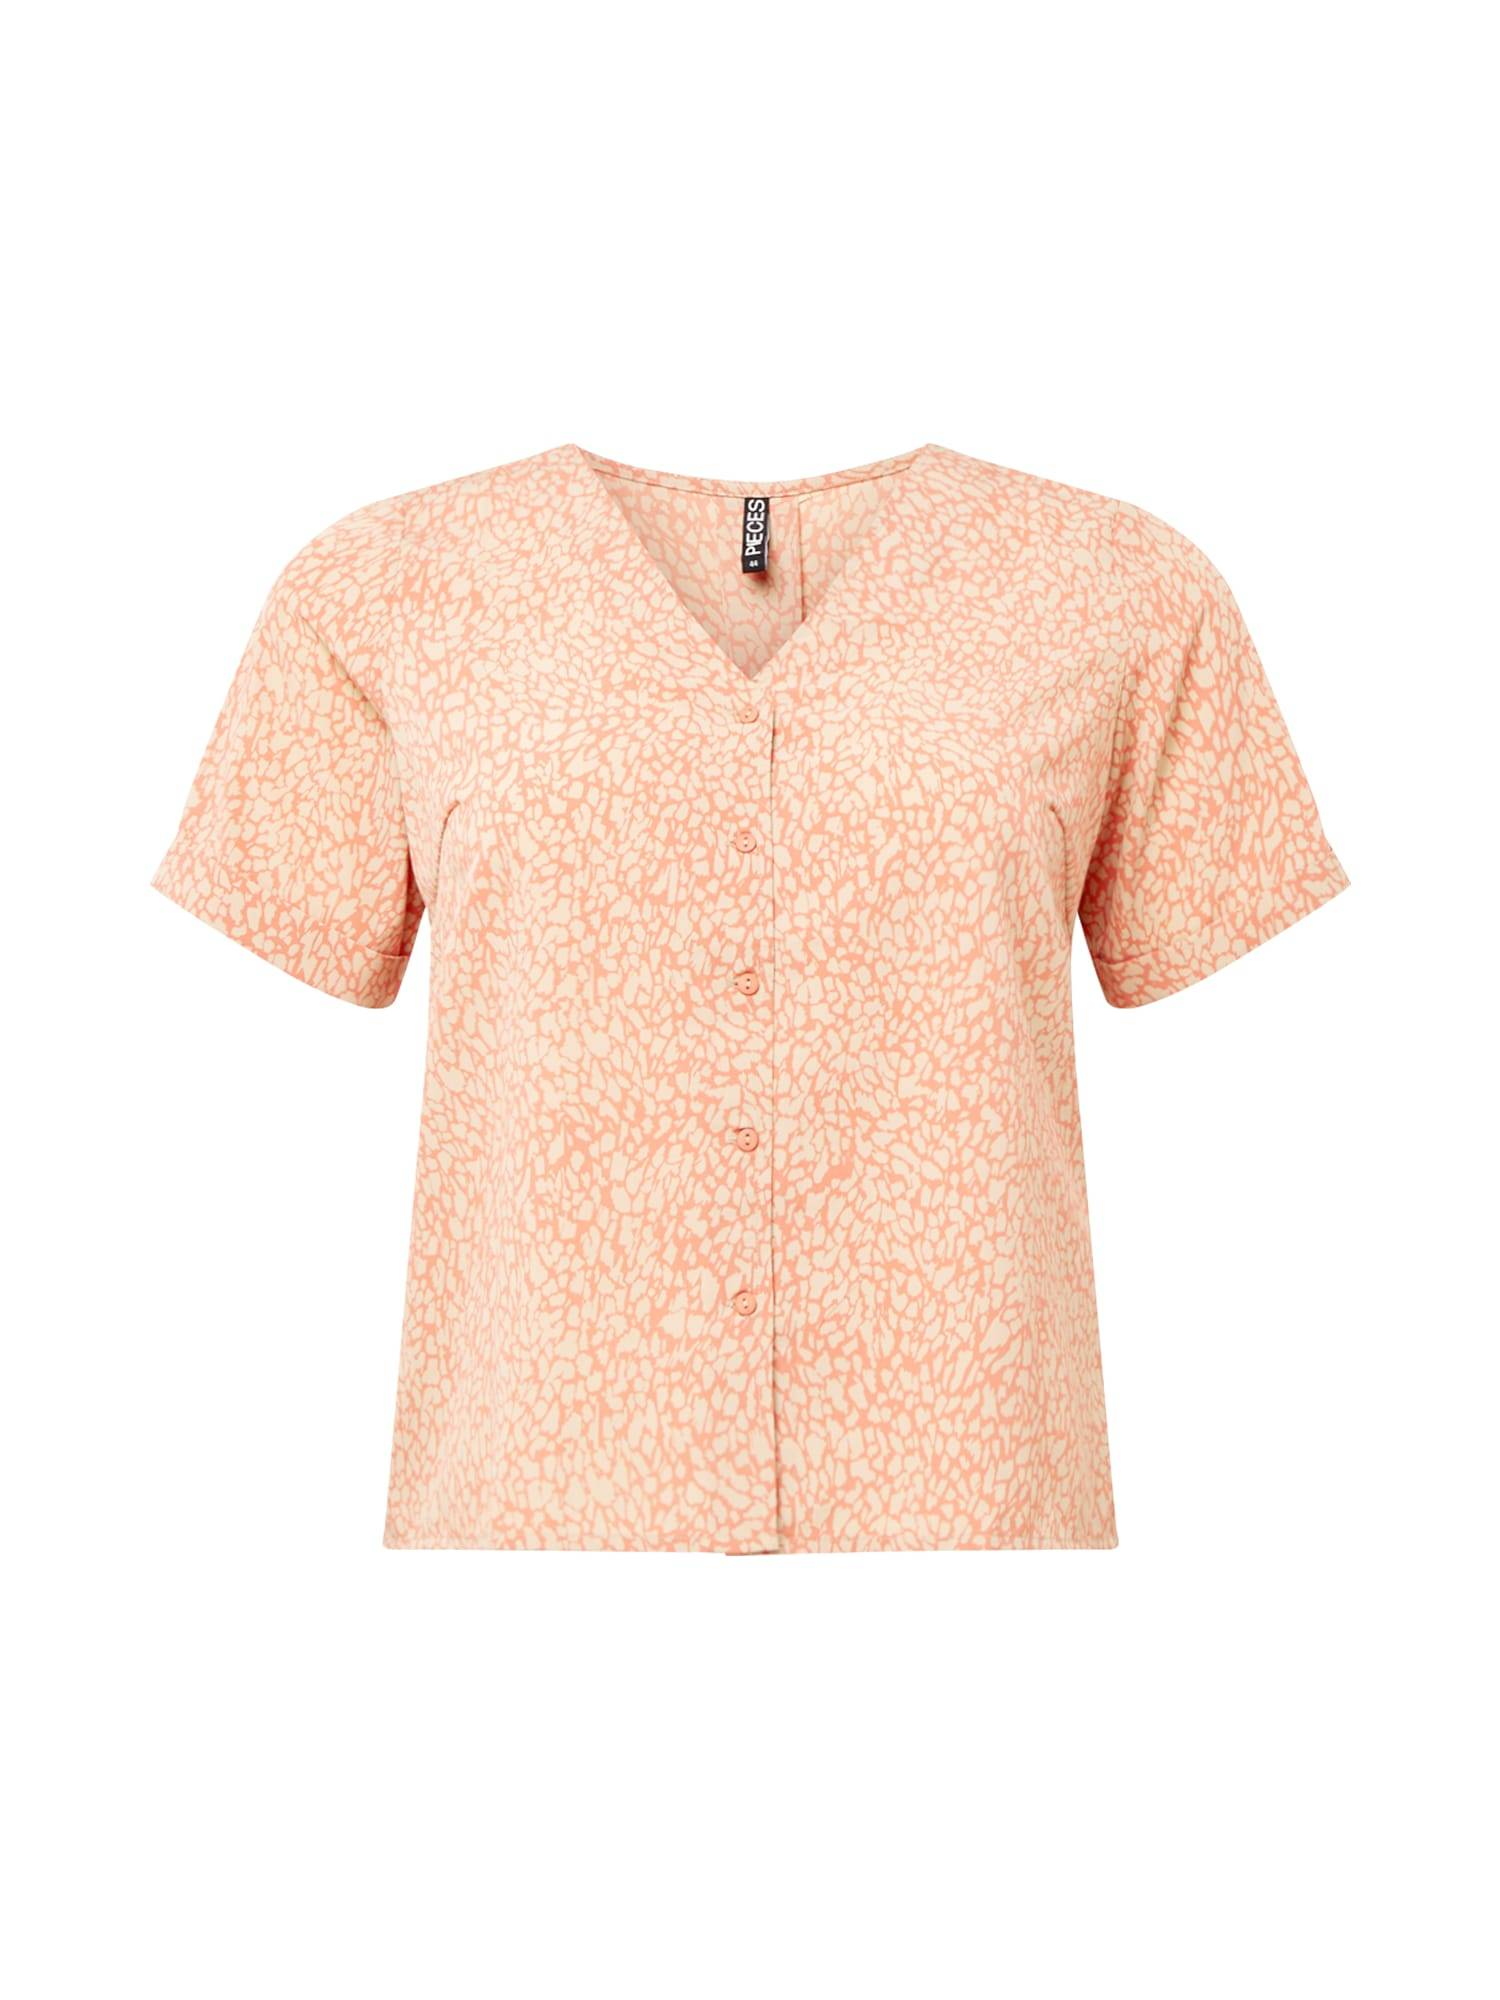 PIECES (Curve) Chemisier 'GILBERTA'  - Orange - Taille: 54 - female